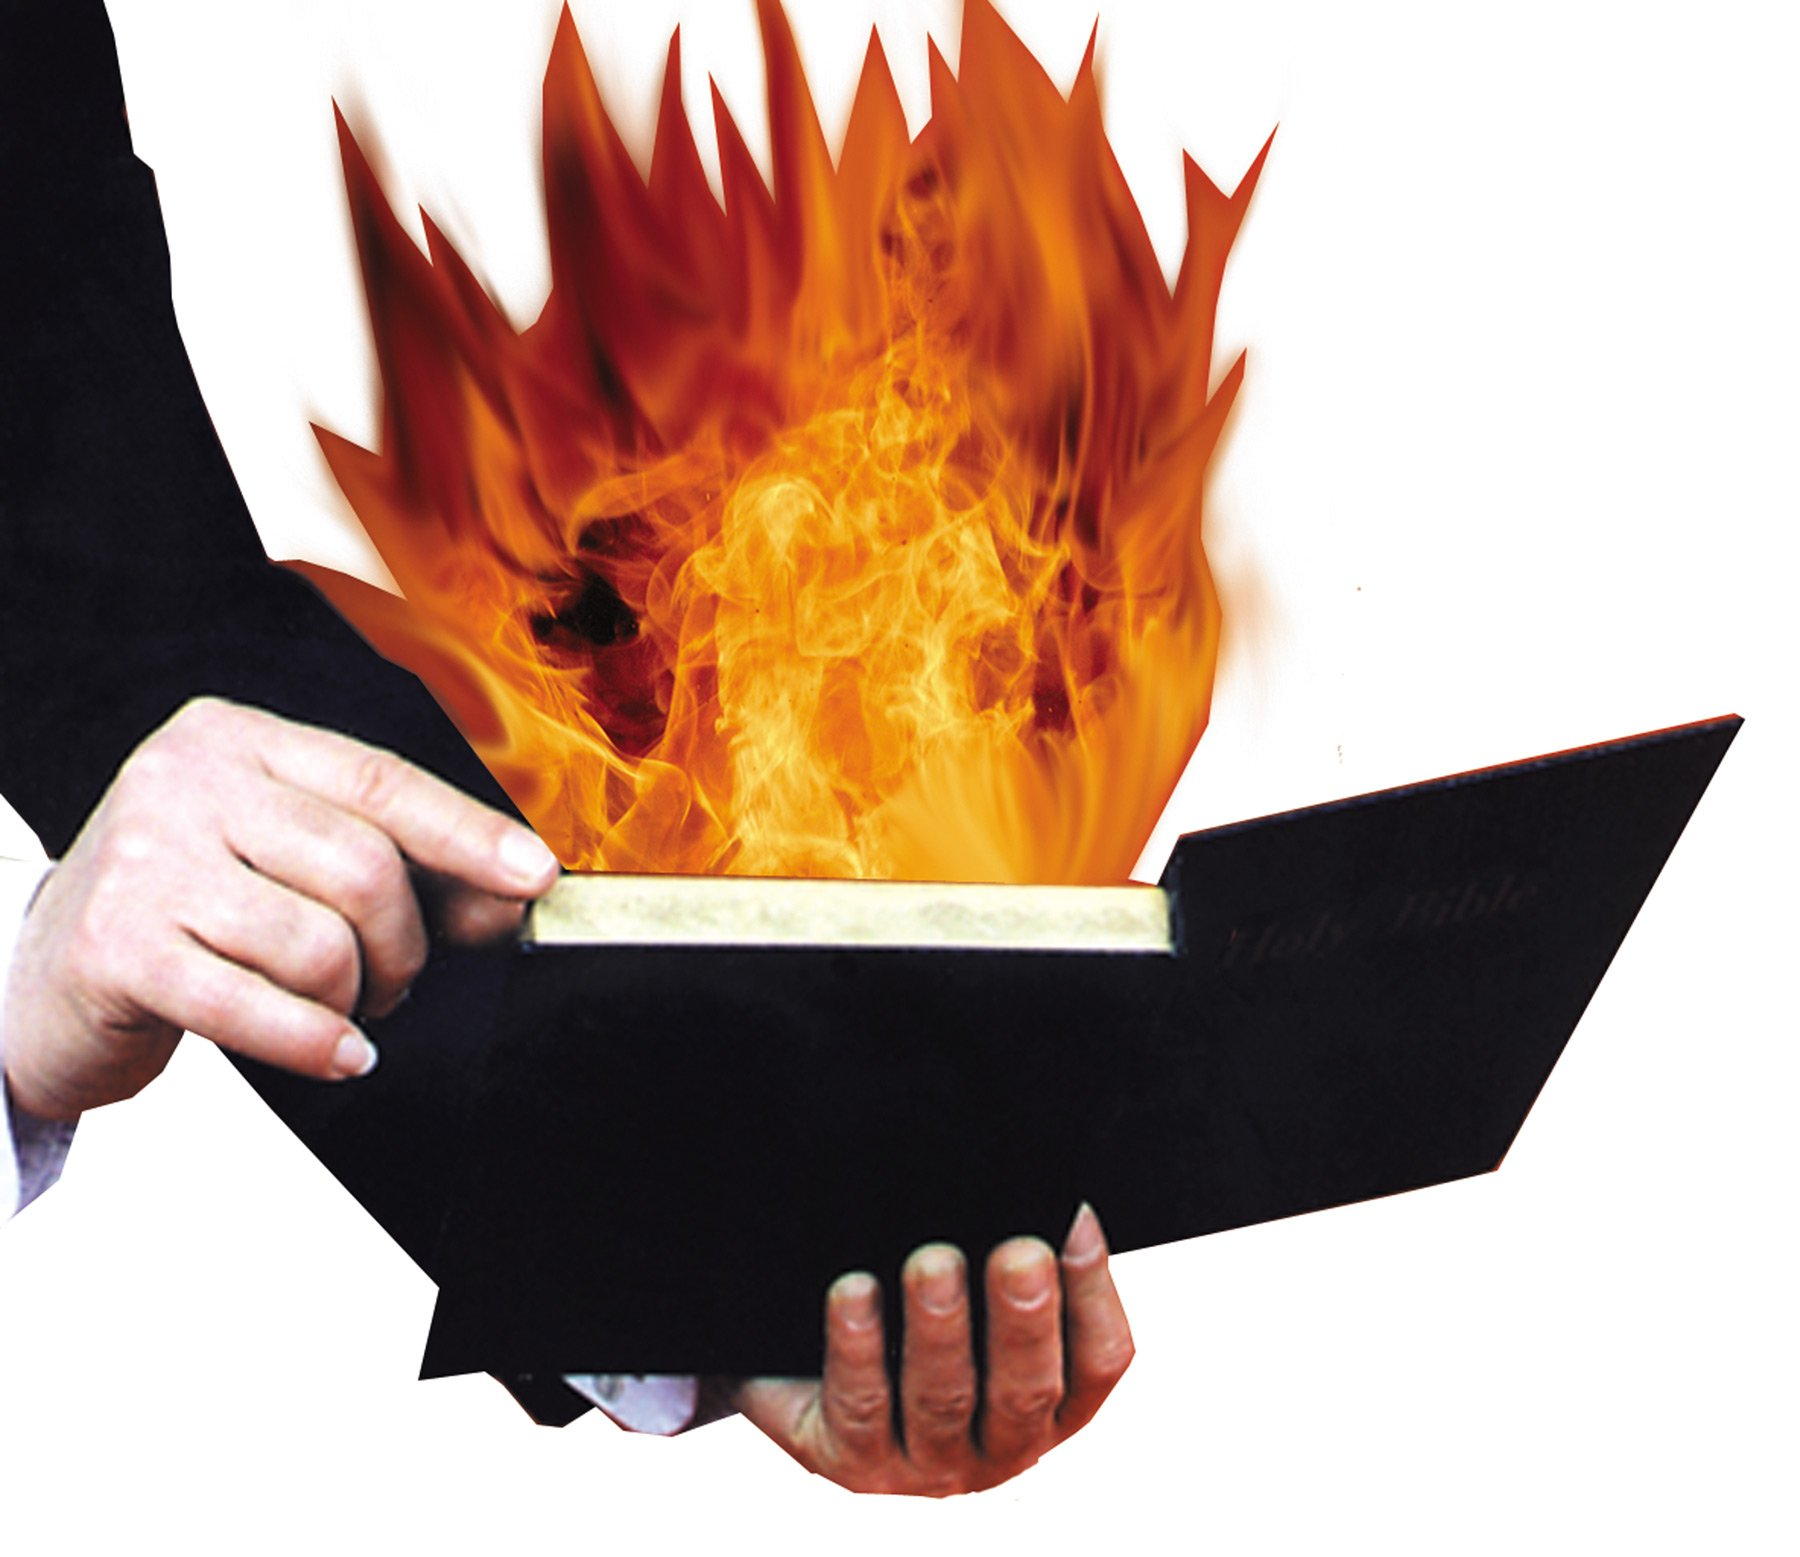 BURNING BOOK by Morris